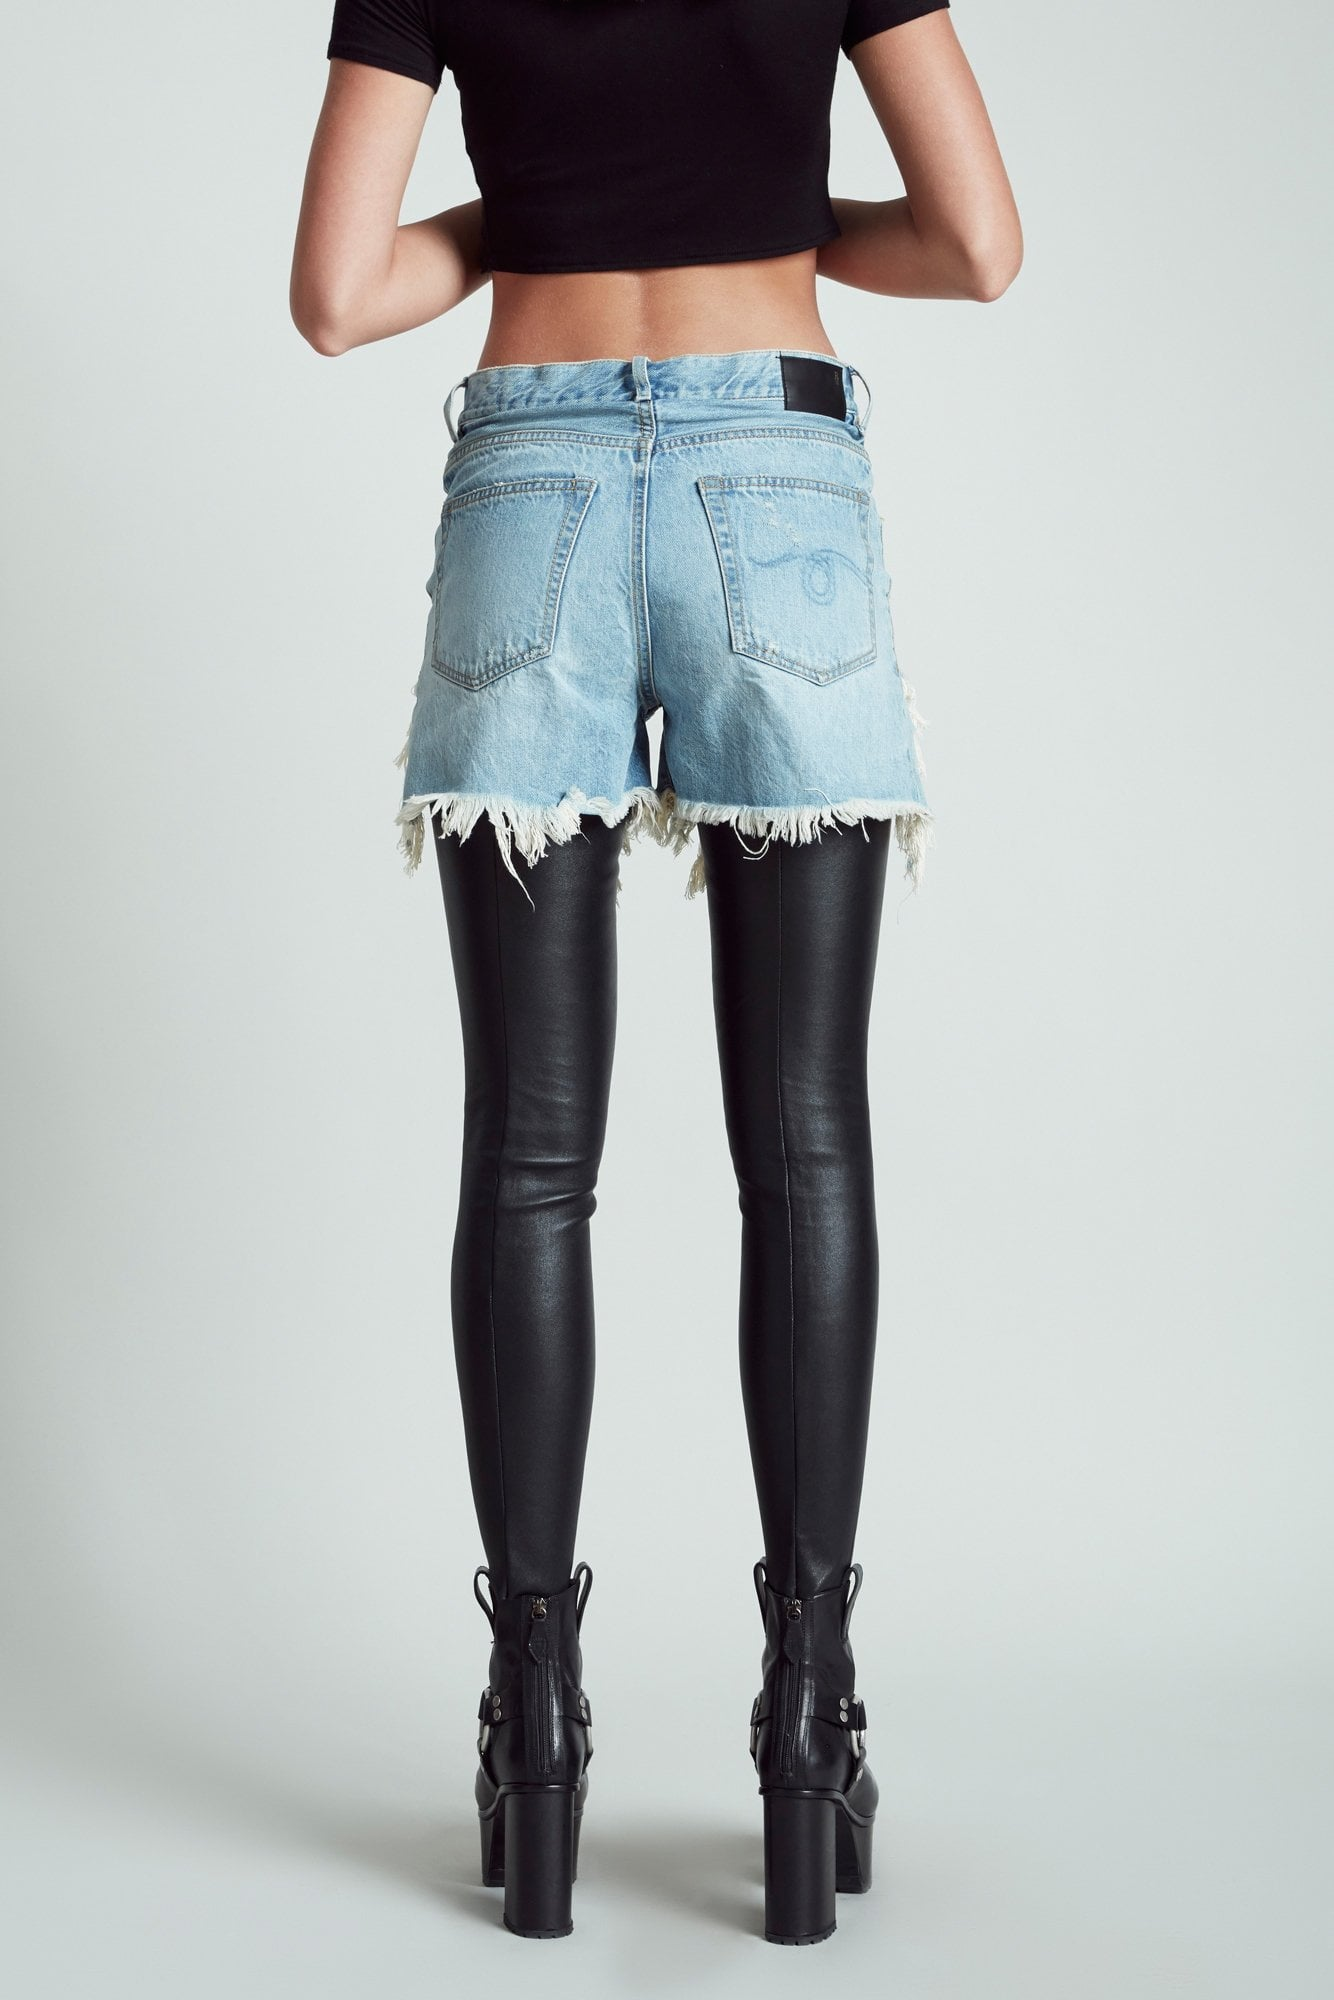 Shredded Slouch Chaps- Tilly